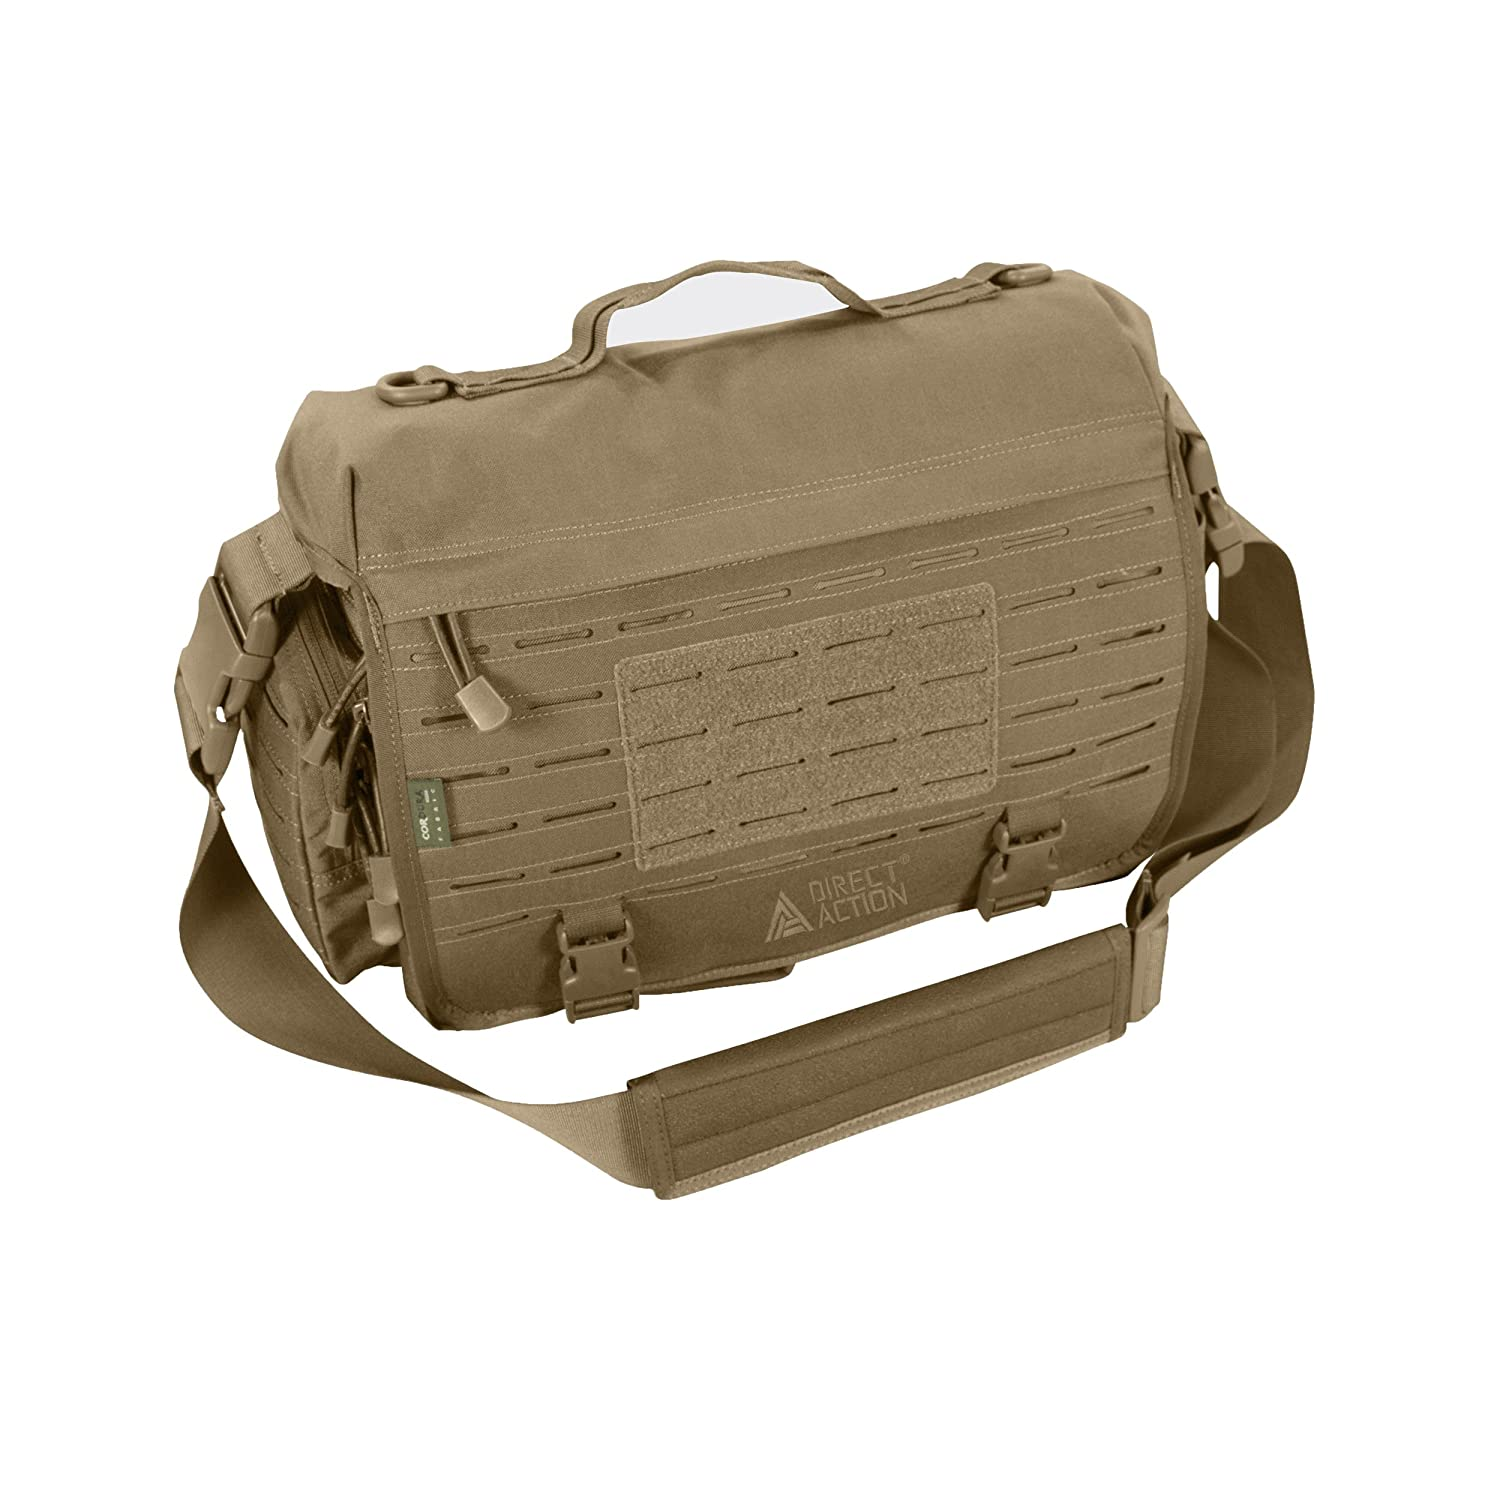 Direct Action Messenger Bag -Cordura- Coyote Braun